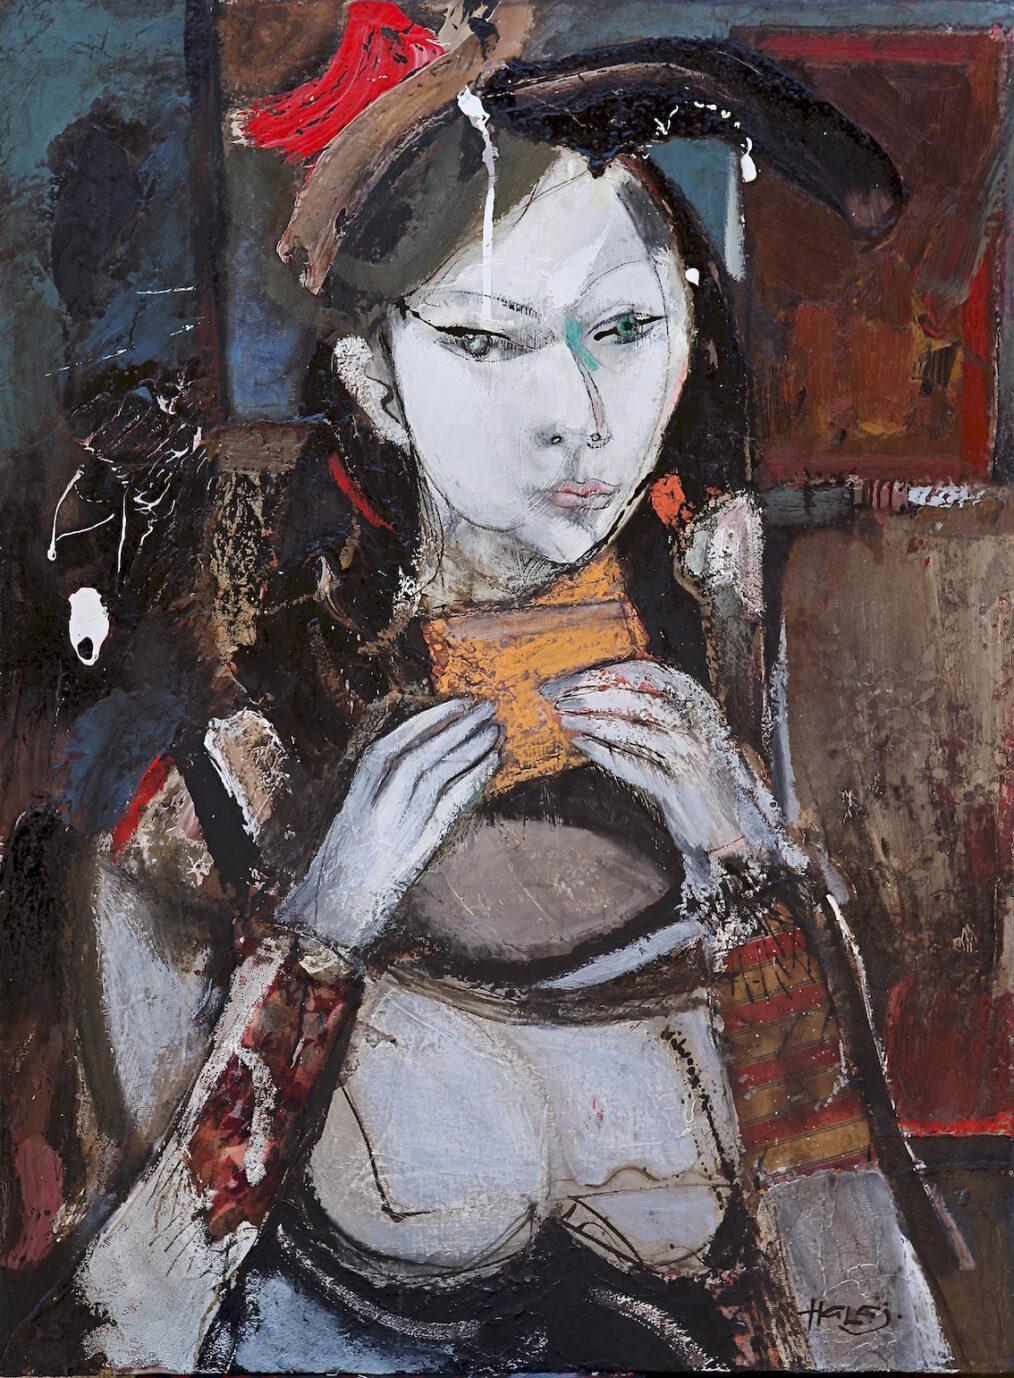 """""""Lena"""" 2014 Oil, emulsion, tar, mixed media on linen, 40x30 in. (101.6x76.2 cm) Private collection, West Hollywood, CA"""